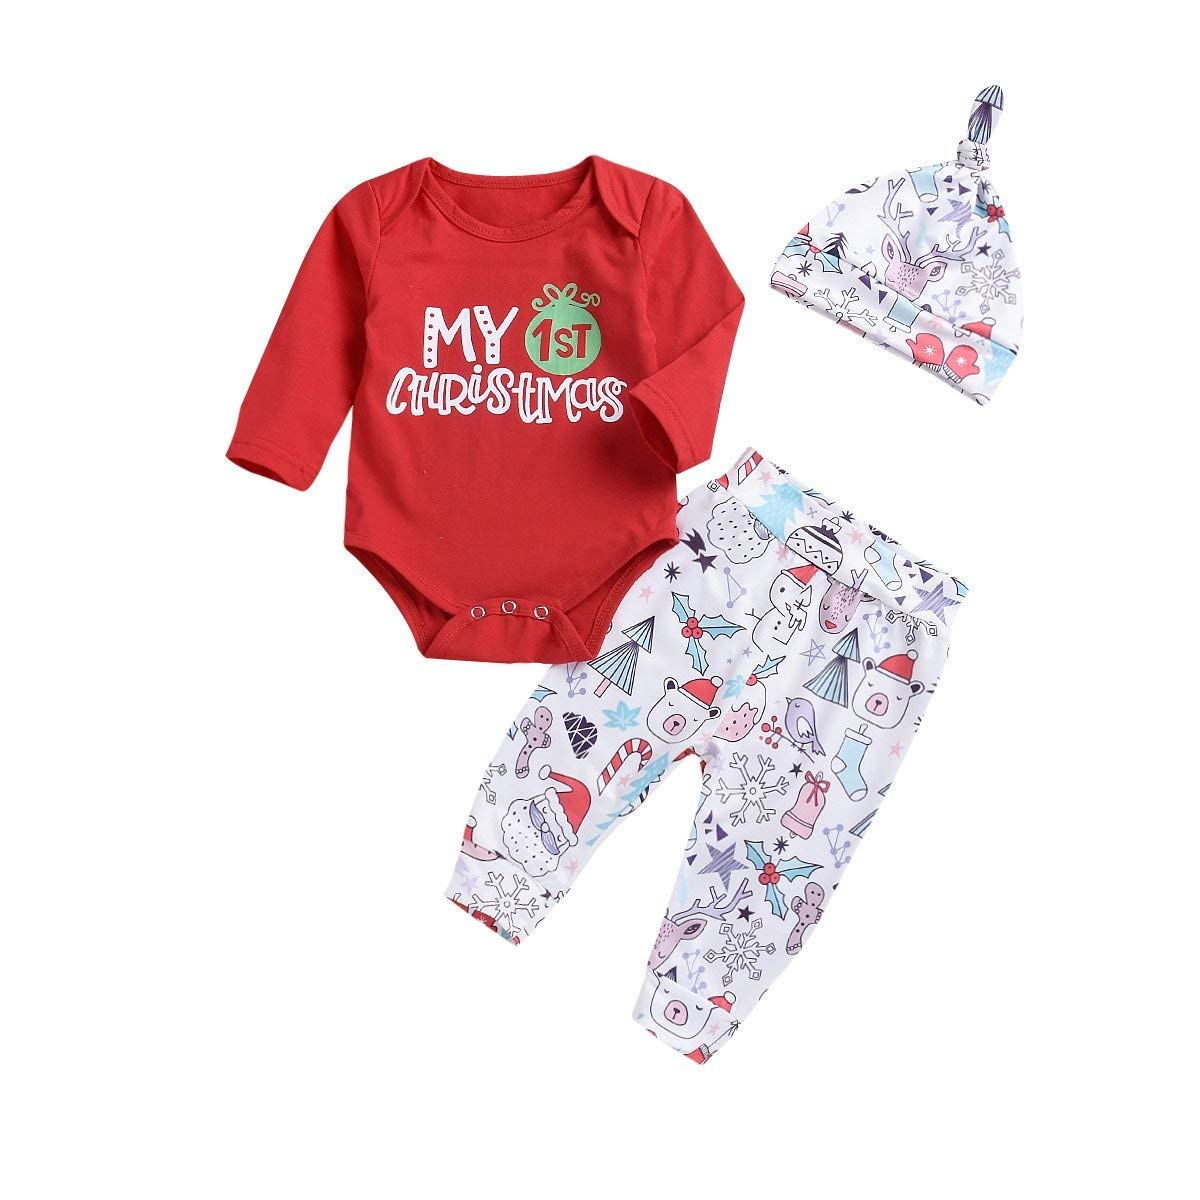 980e7c87e8e7 Amazon.com  Xmas gift Baby Girl Boy Clothes My 1st Christmas Romper ...